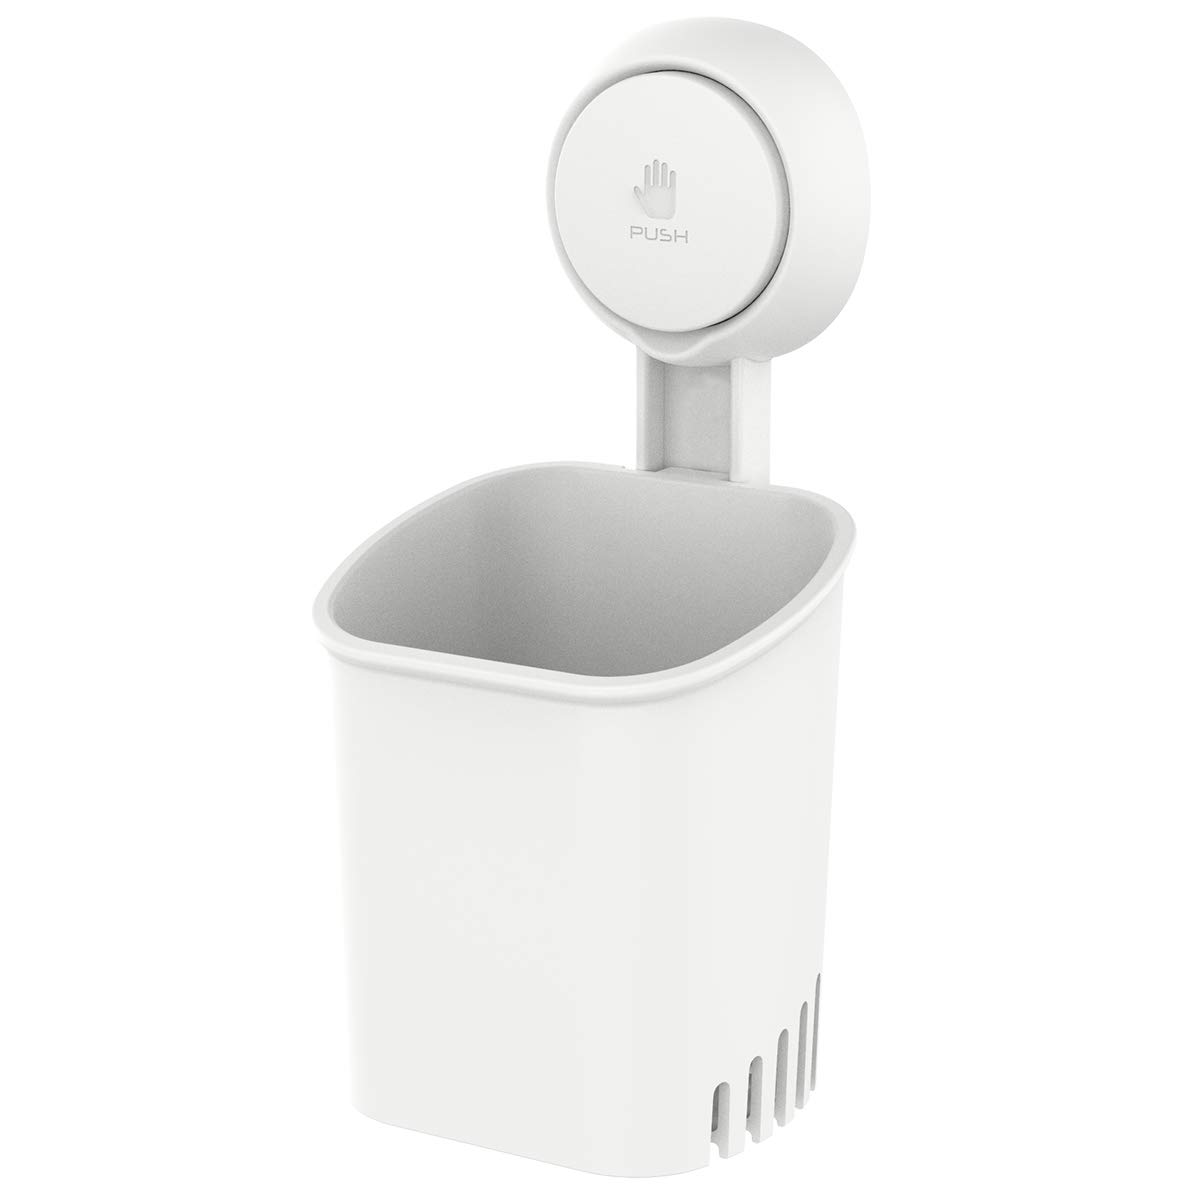 TAILI Suction Cup Toothbrush Holder Wall Mounted, Power Lock Bathroom Shower Organizer for Electric Toothbrushes, Toothpaste, Shaver, Razor and Makeup Brush, No Drill or Nail Needed - White